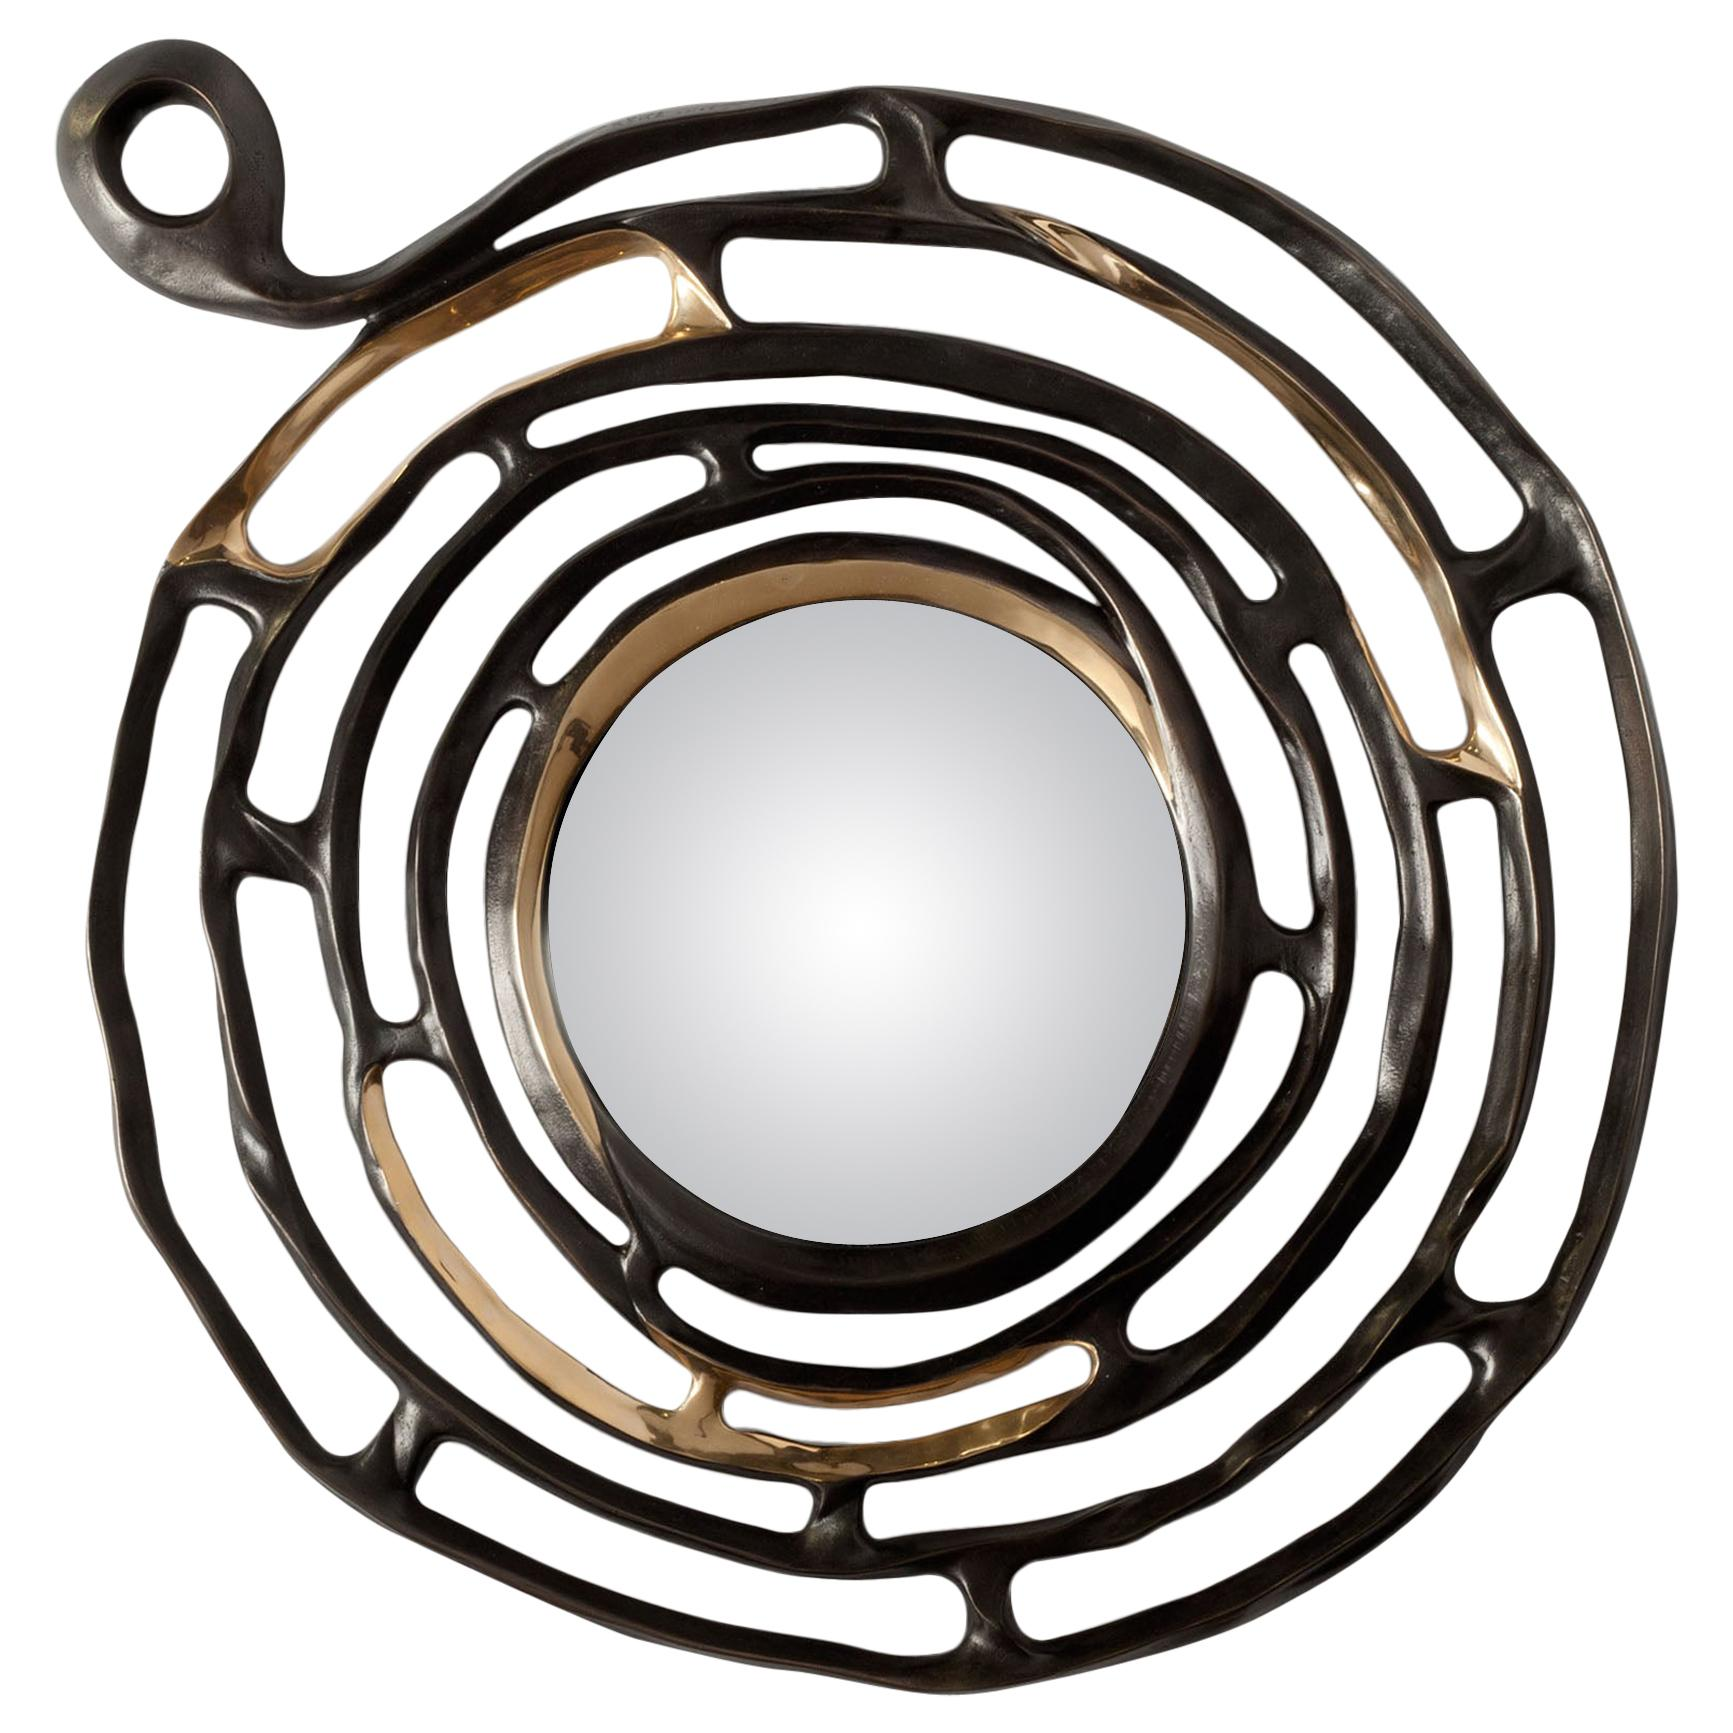 """Aldus, """"Minosse"""" Wall Mirror, Burnished and Polished Cast Bronze, Contemporary"""